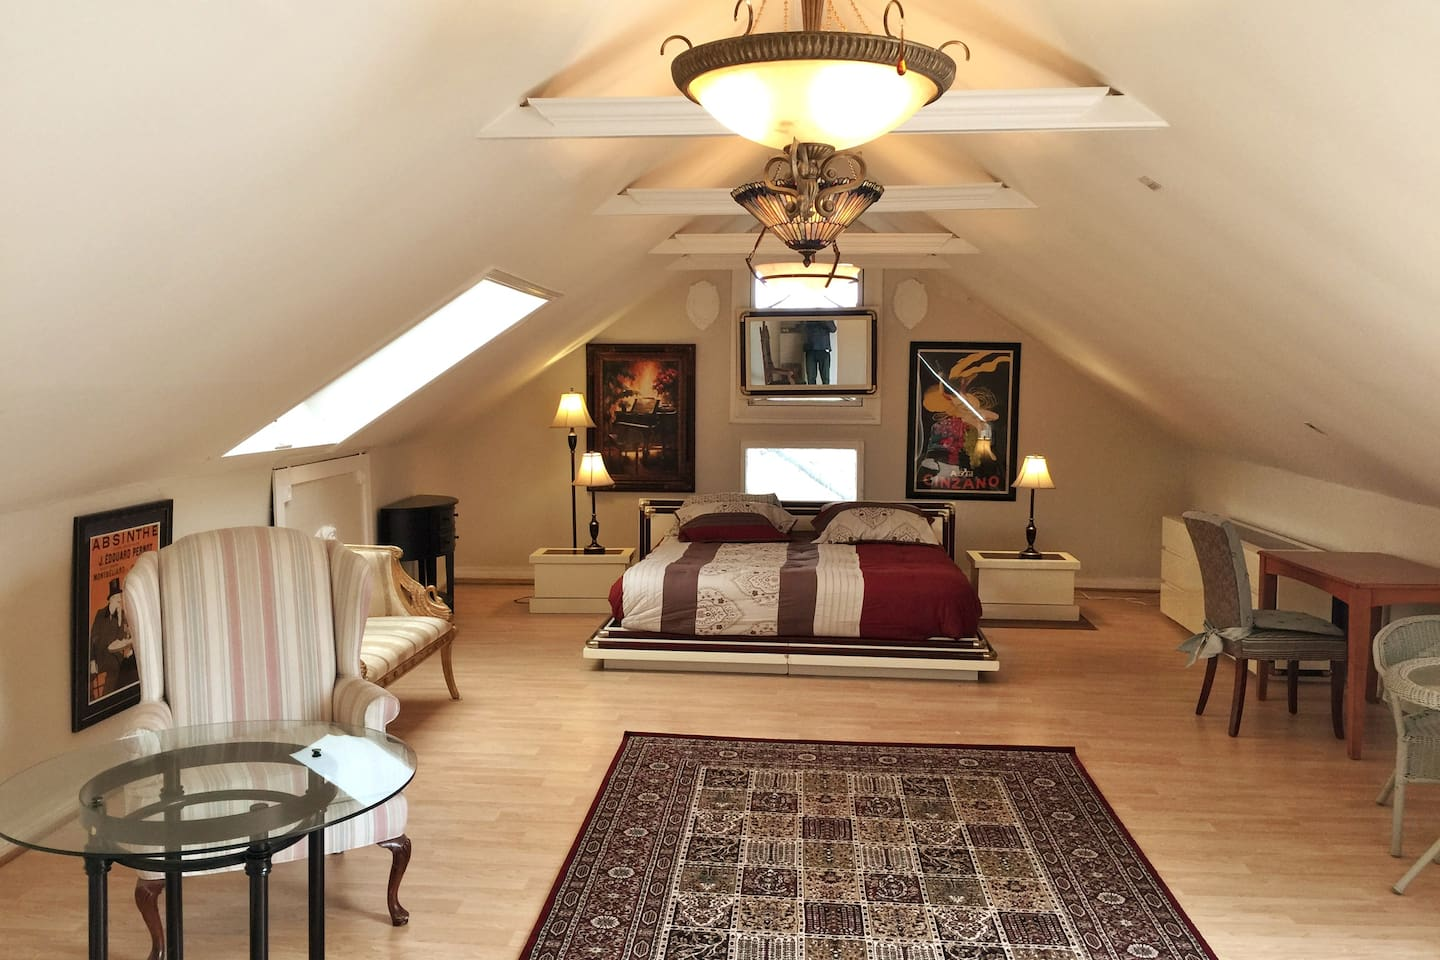 Spacious attic living and sleeping space